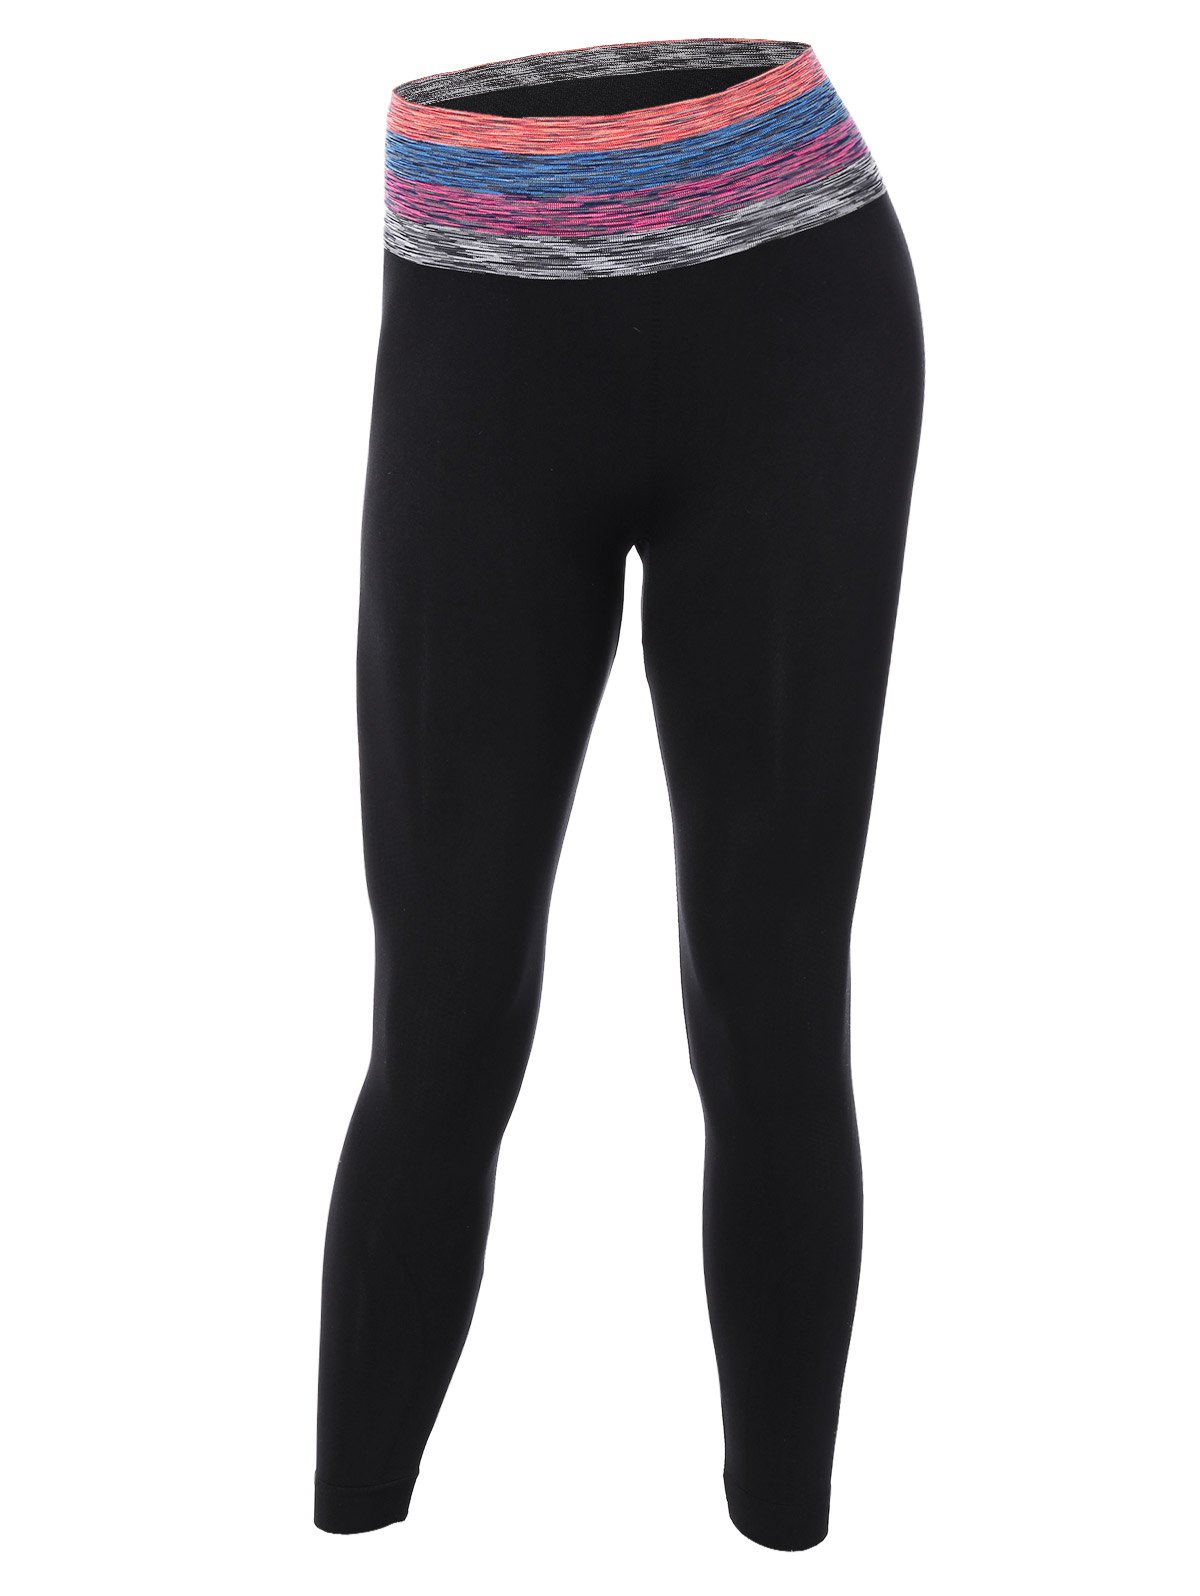 Striped Splicing Skinny Yoga Pants